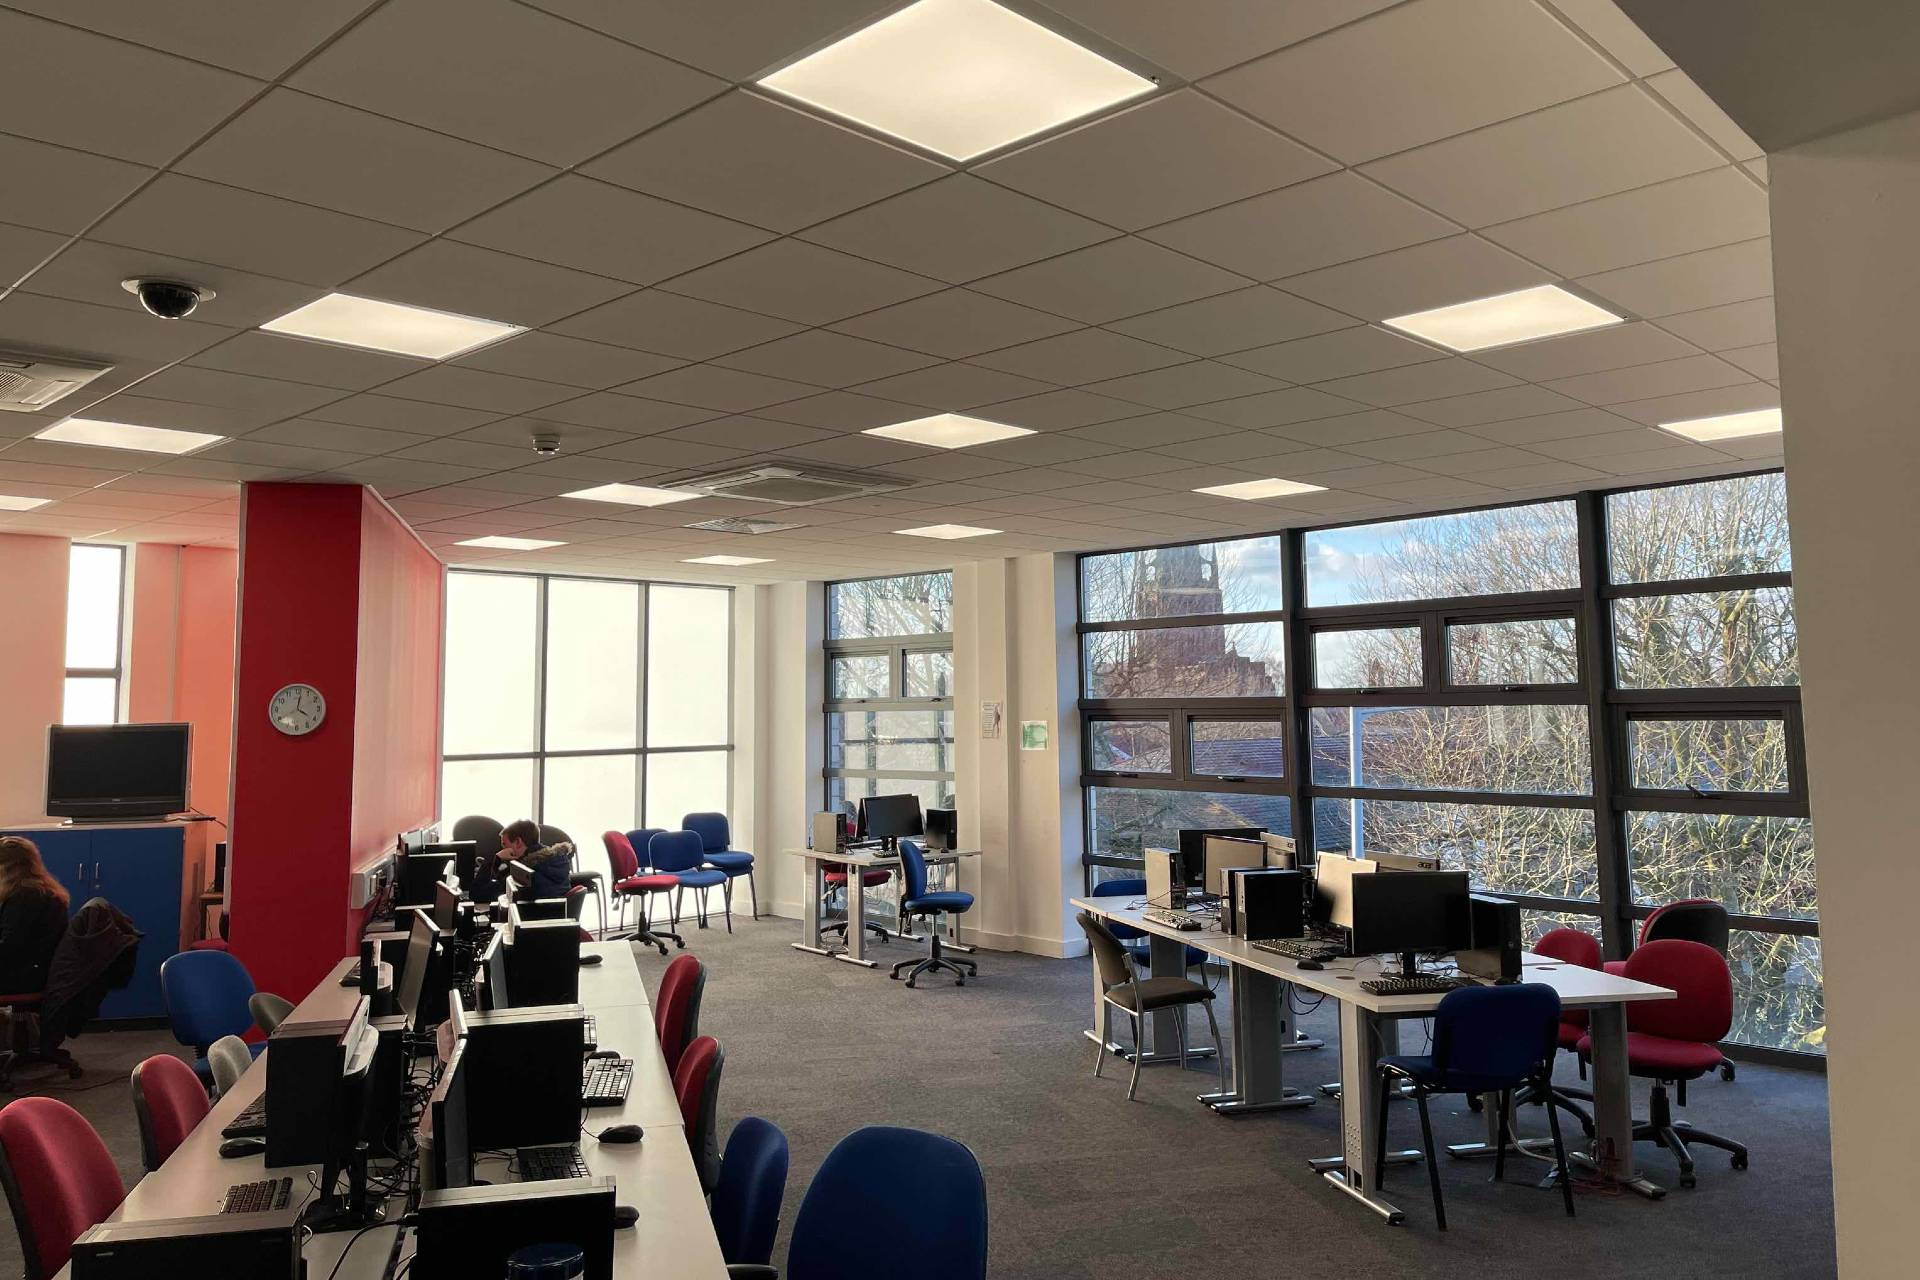 Energys Group helps Aquinas College, Stockport progress decarbonisation strategy with major lighting upgrade